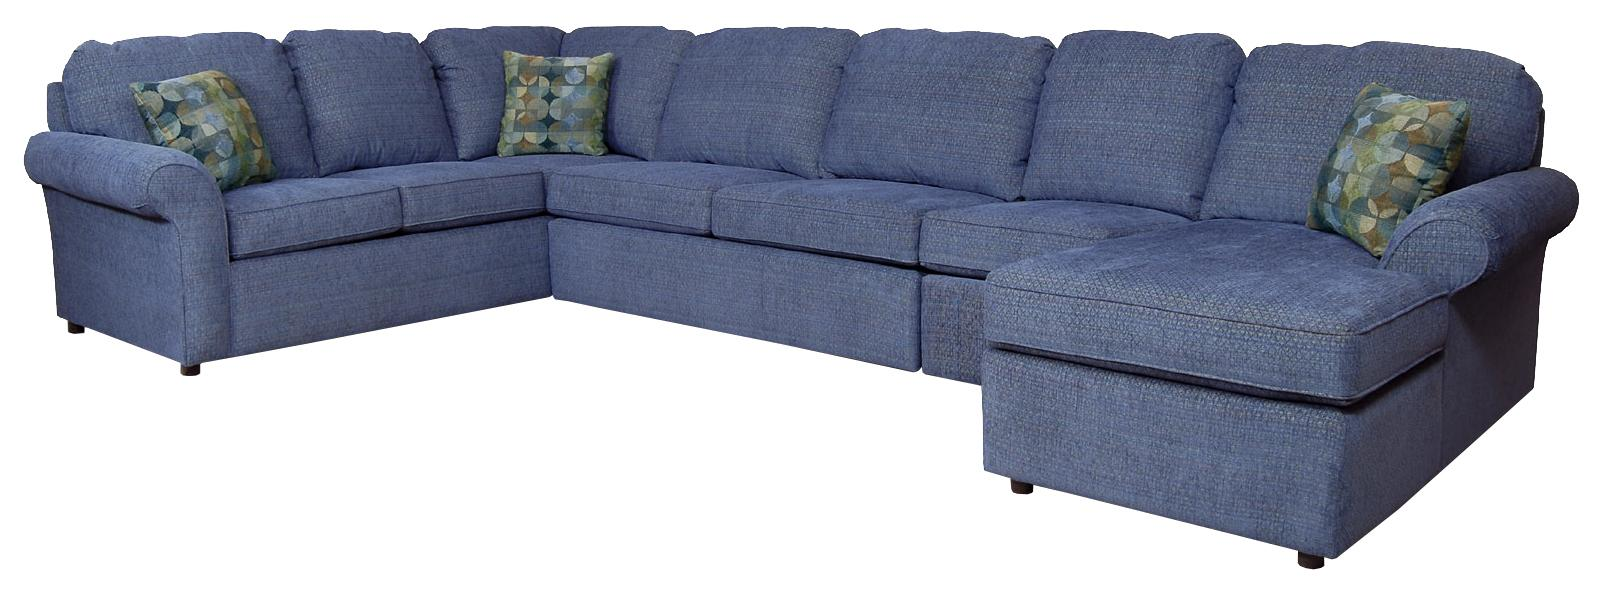 Malibu 6-7 Seat (right side) Chaise Sectional by England at Fashion Furniture